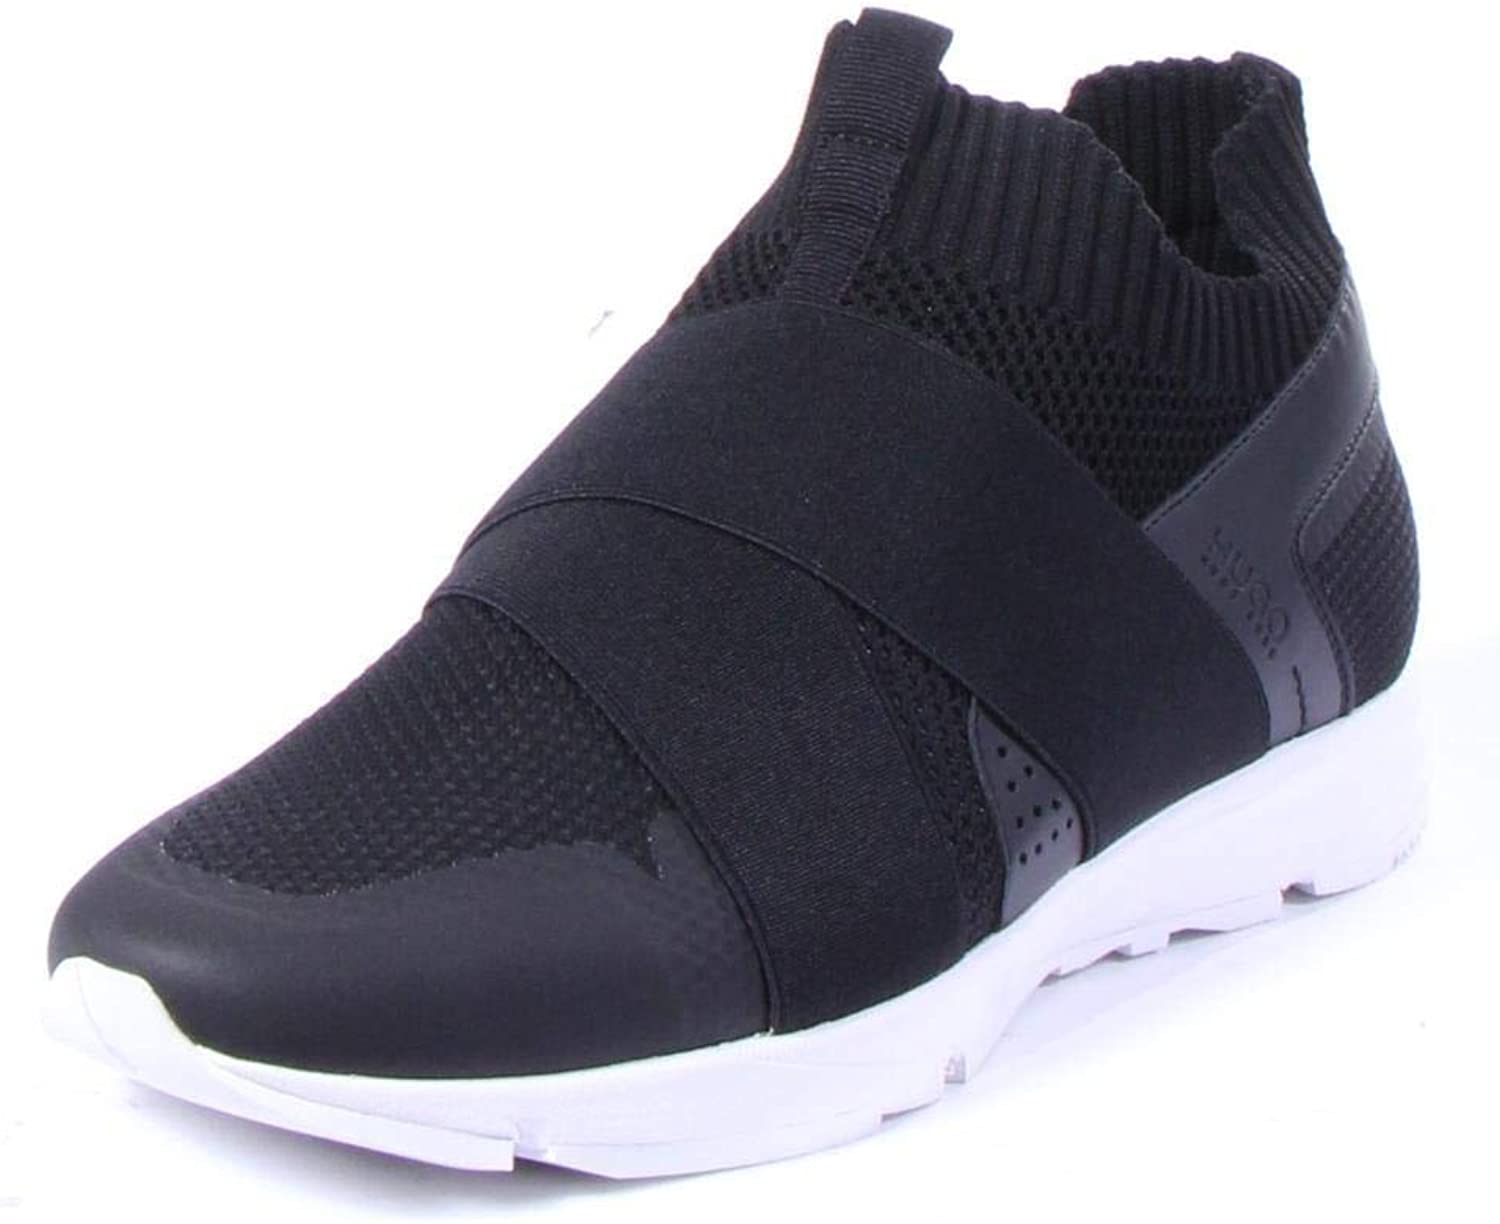 Hugo Boss Men Hybrid_Runn_kntel Sneakers shoes